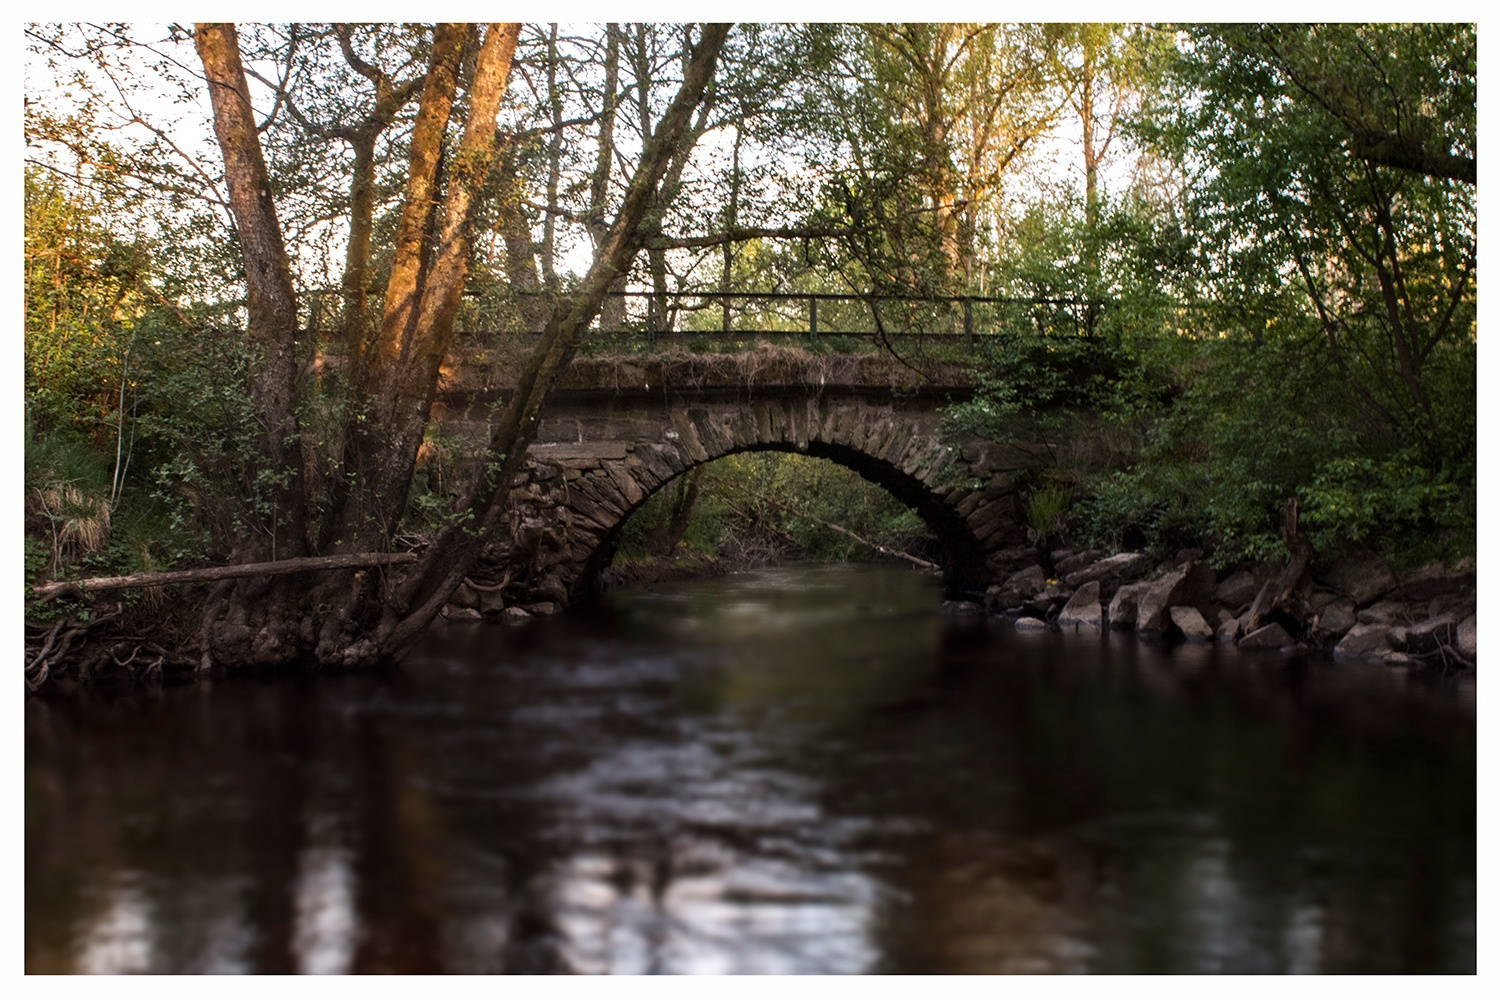 The old stone bridge at sunset by Linda Persson